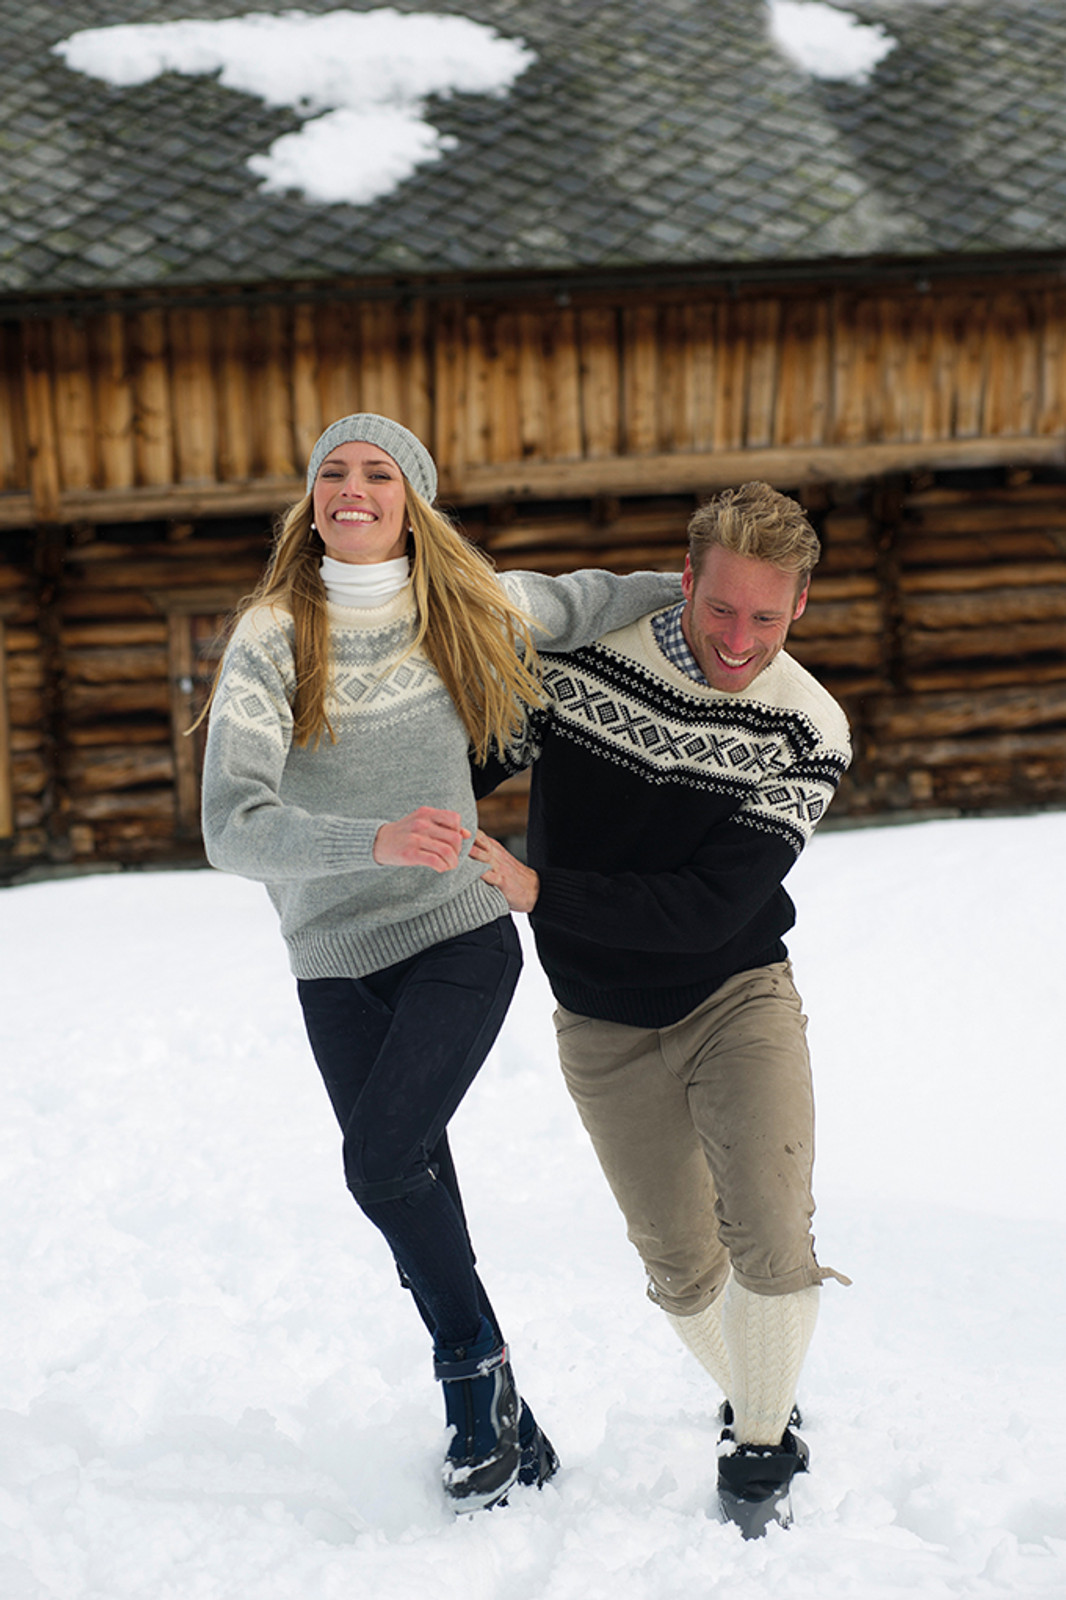 Couple playing in the snow wearing the Dale of Norway Cortina sweater in Light Charcoal/Off White, 92521-E and Navy/Off White, 92521-C